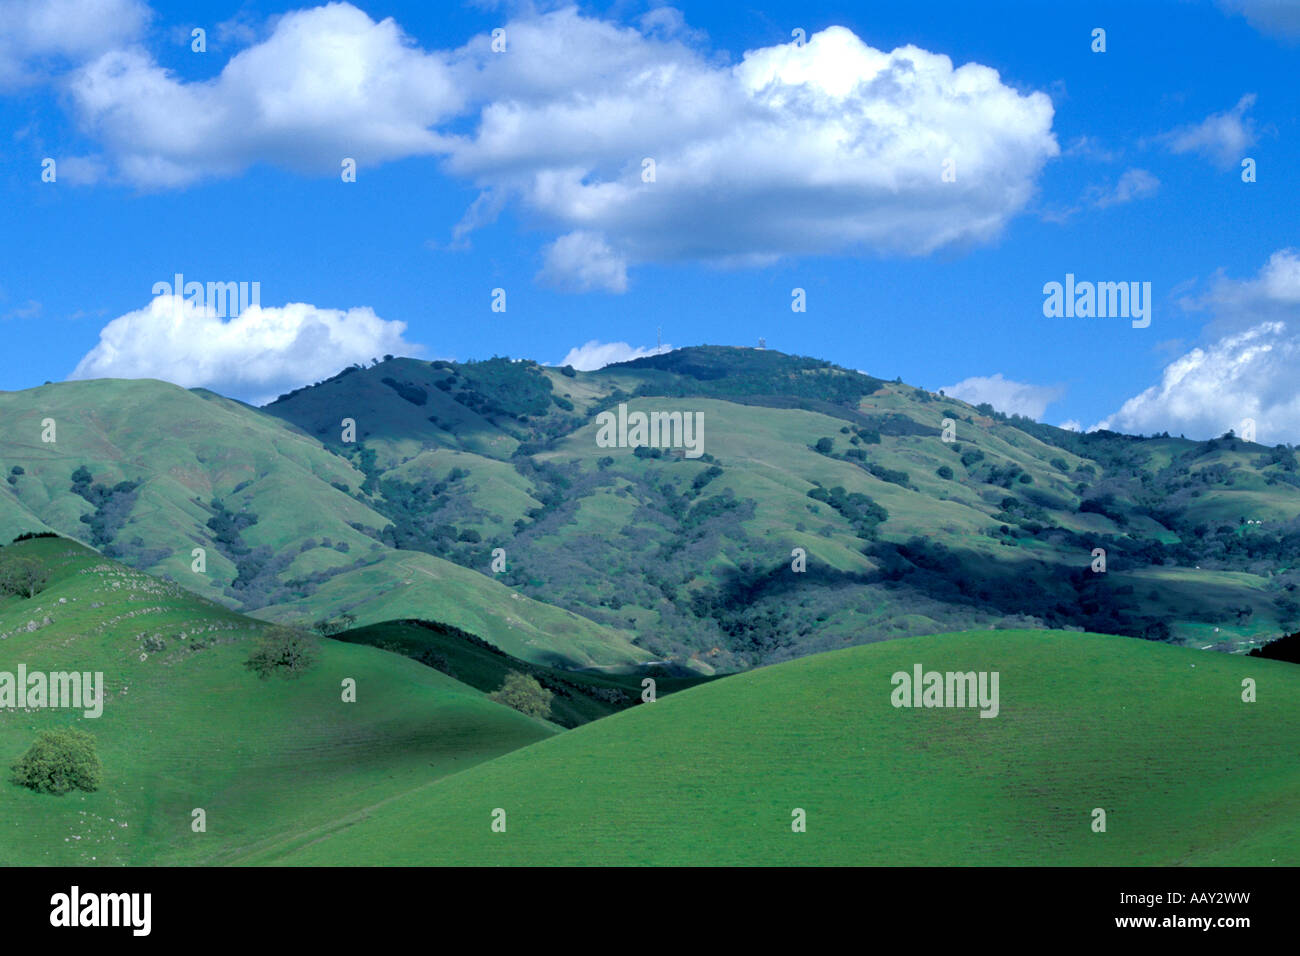 clean air over green hills in danville california showing mount